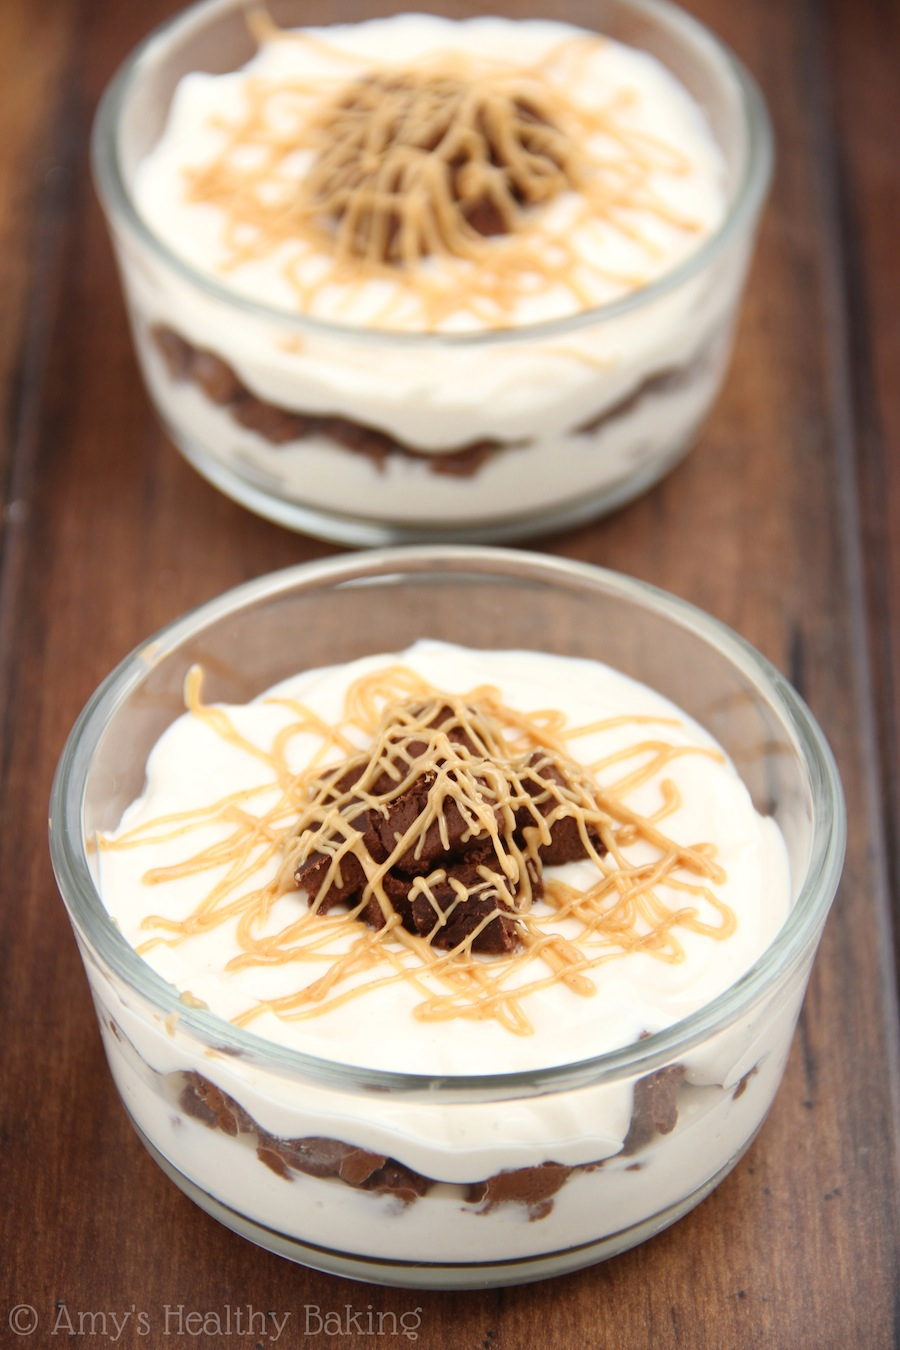 These parfaits taste like a big peanut butter cup! Ready in 20 minutes, plus they're healthy & clean eating!